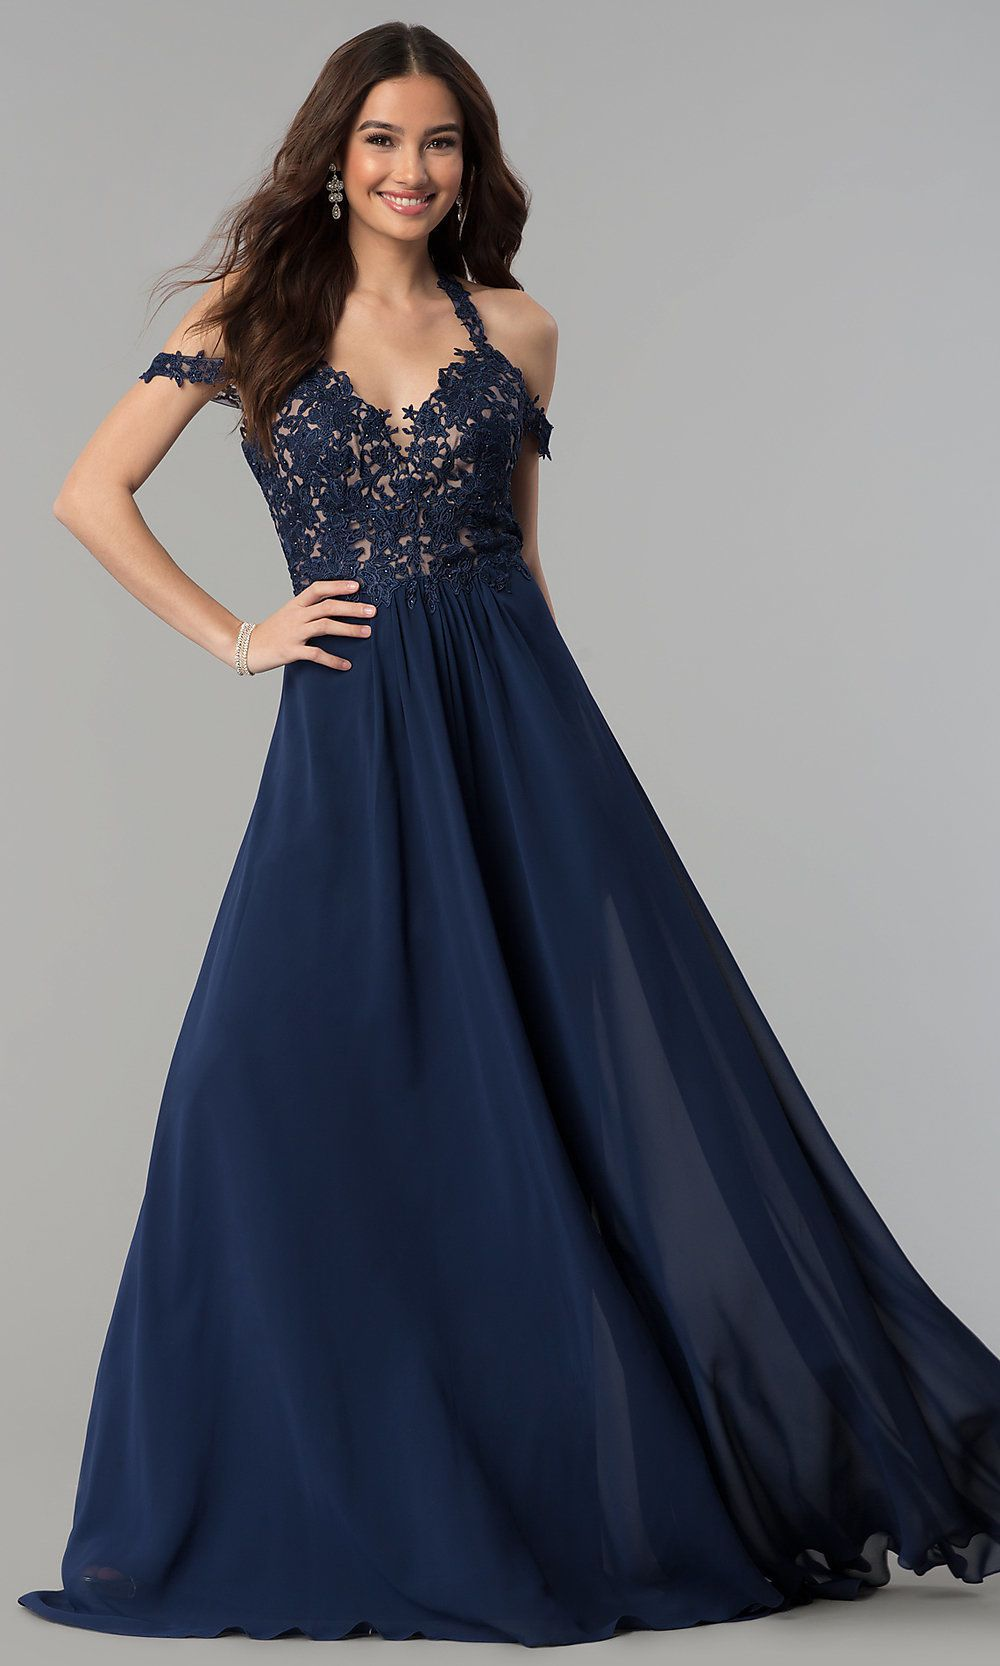 Style 10006 Faviana Blue Size 10 Tall Height Lace Wedding Guest A-line Dress on Queenly